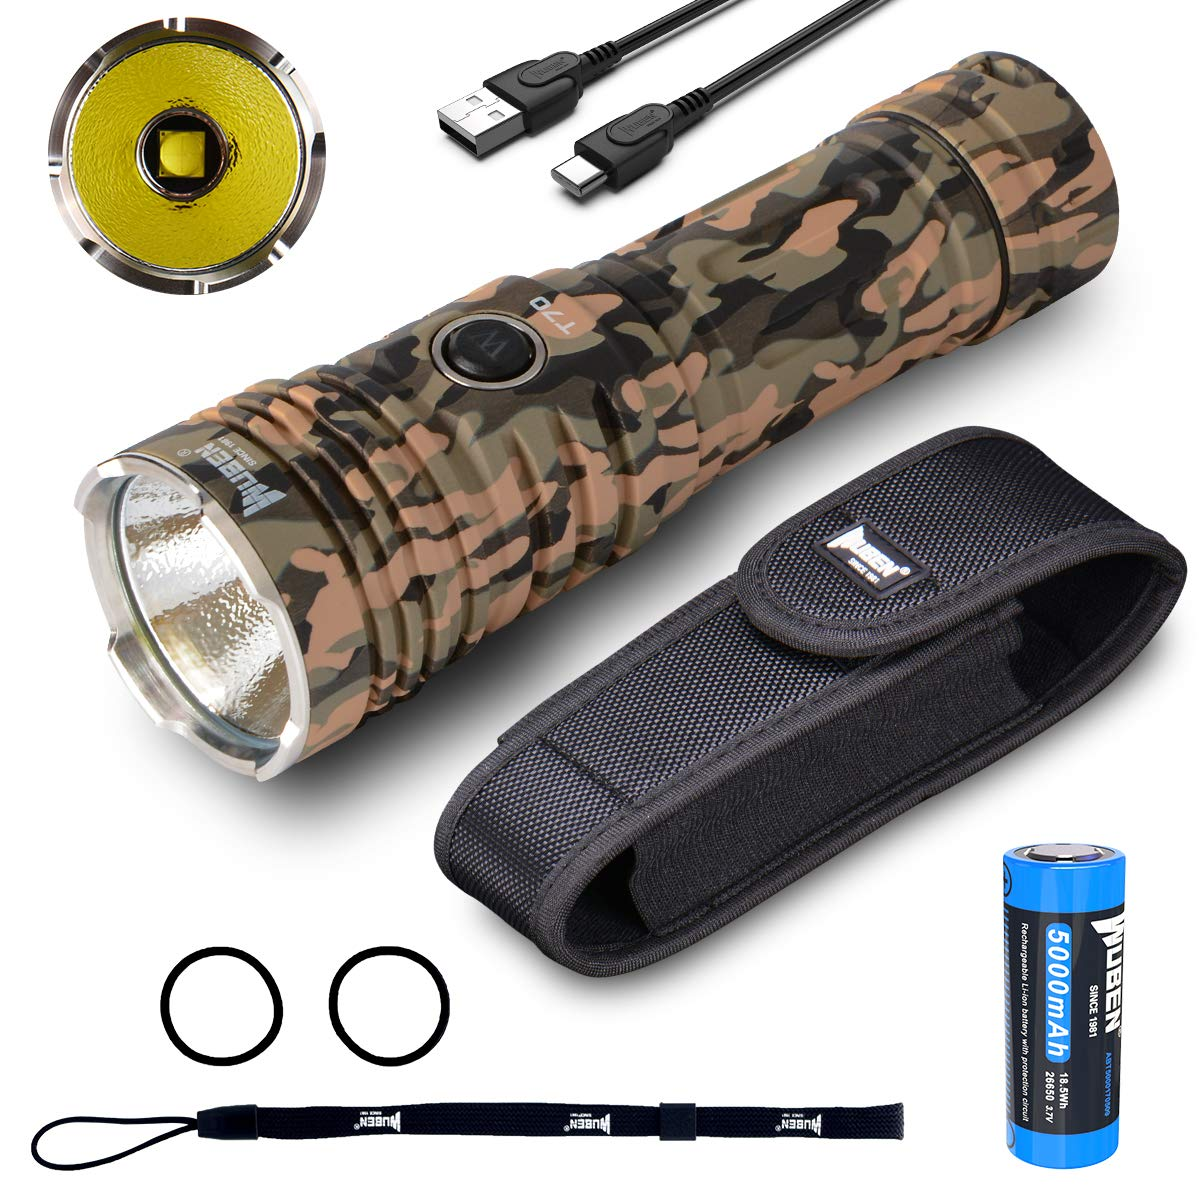 WUBEN T70 4200 High Lumens Flashlight CREE LED Waterproof Type-C Rechargeable Flashlights Torch with 26650 Li-ion Battery Included for Outdoors Camping Hiking Climbing (Camo)